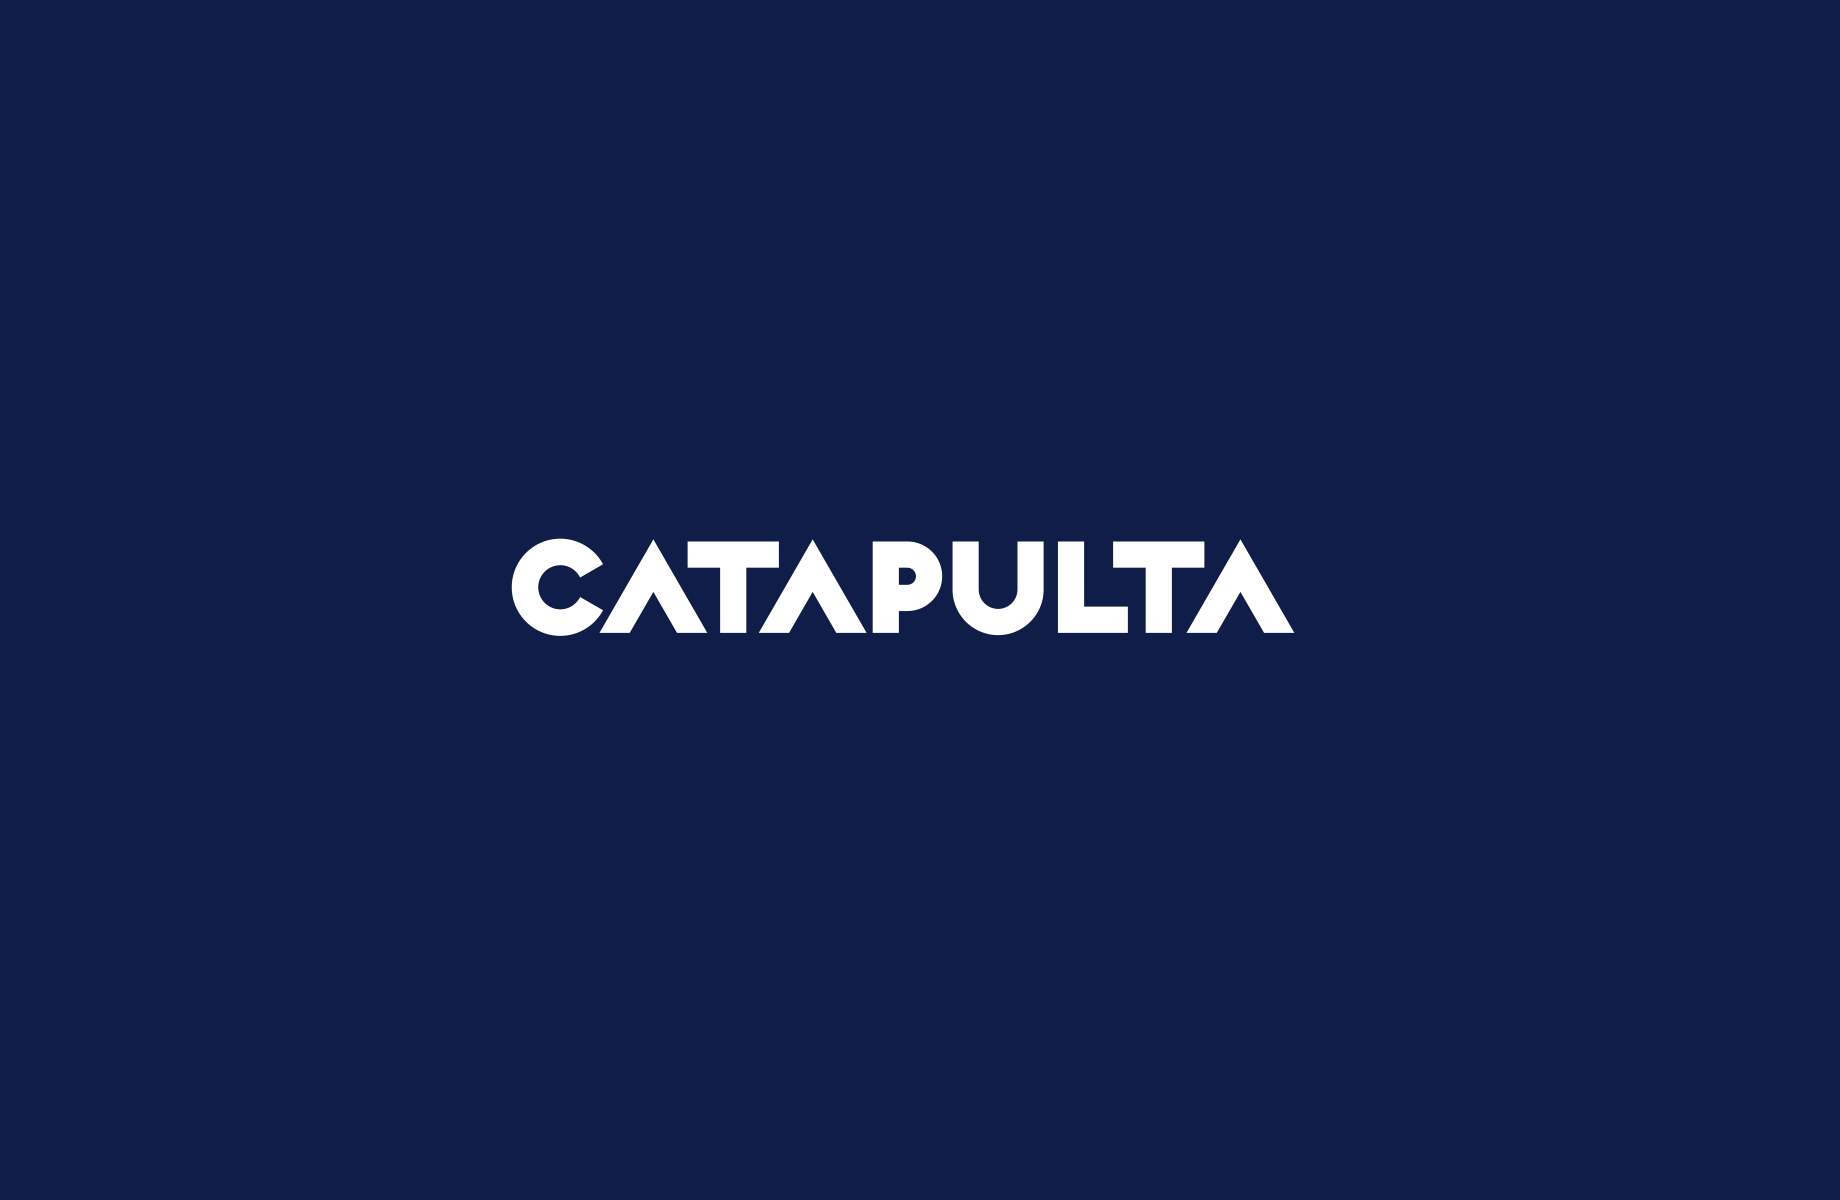 catapulta-face-goodfromyou-5.png